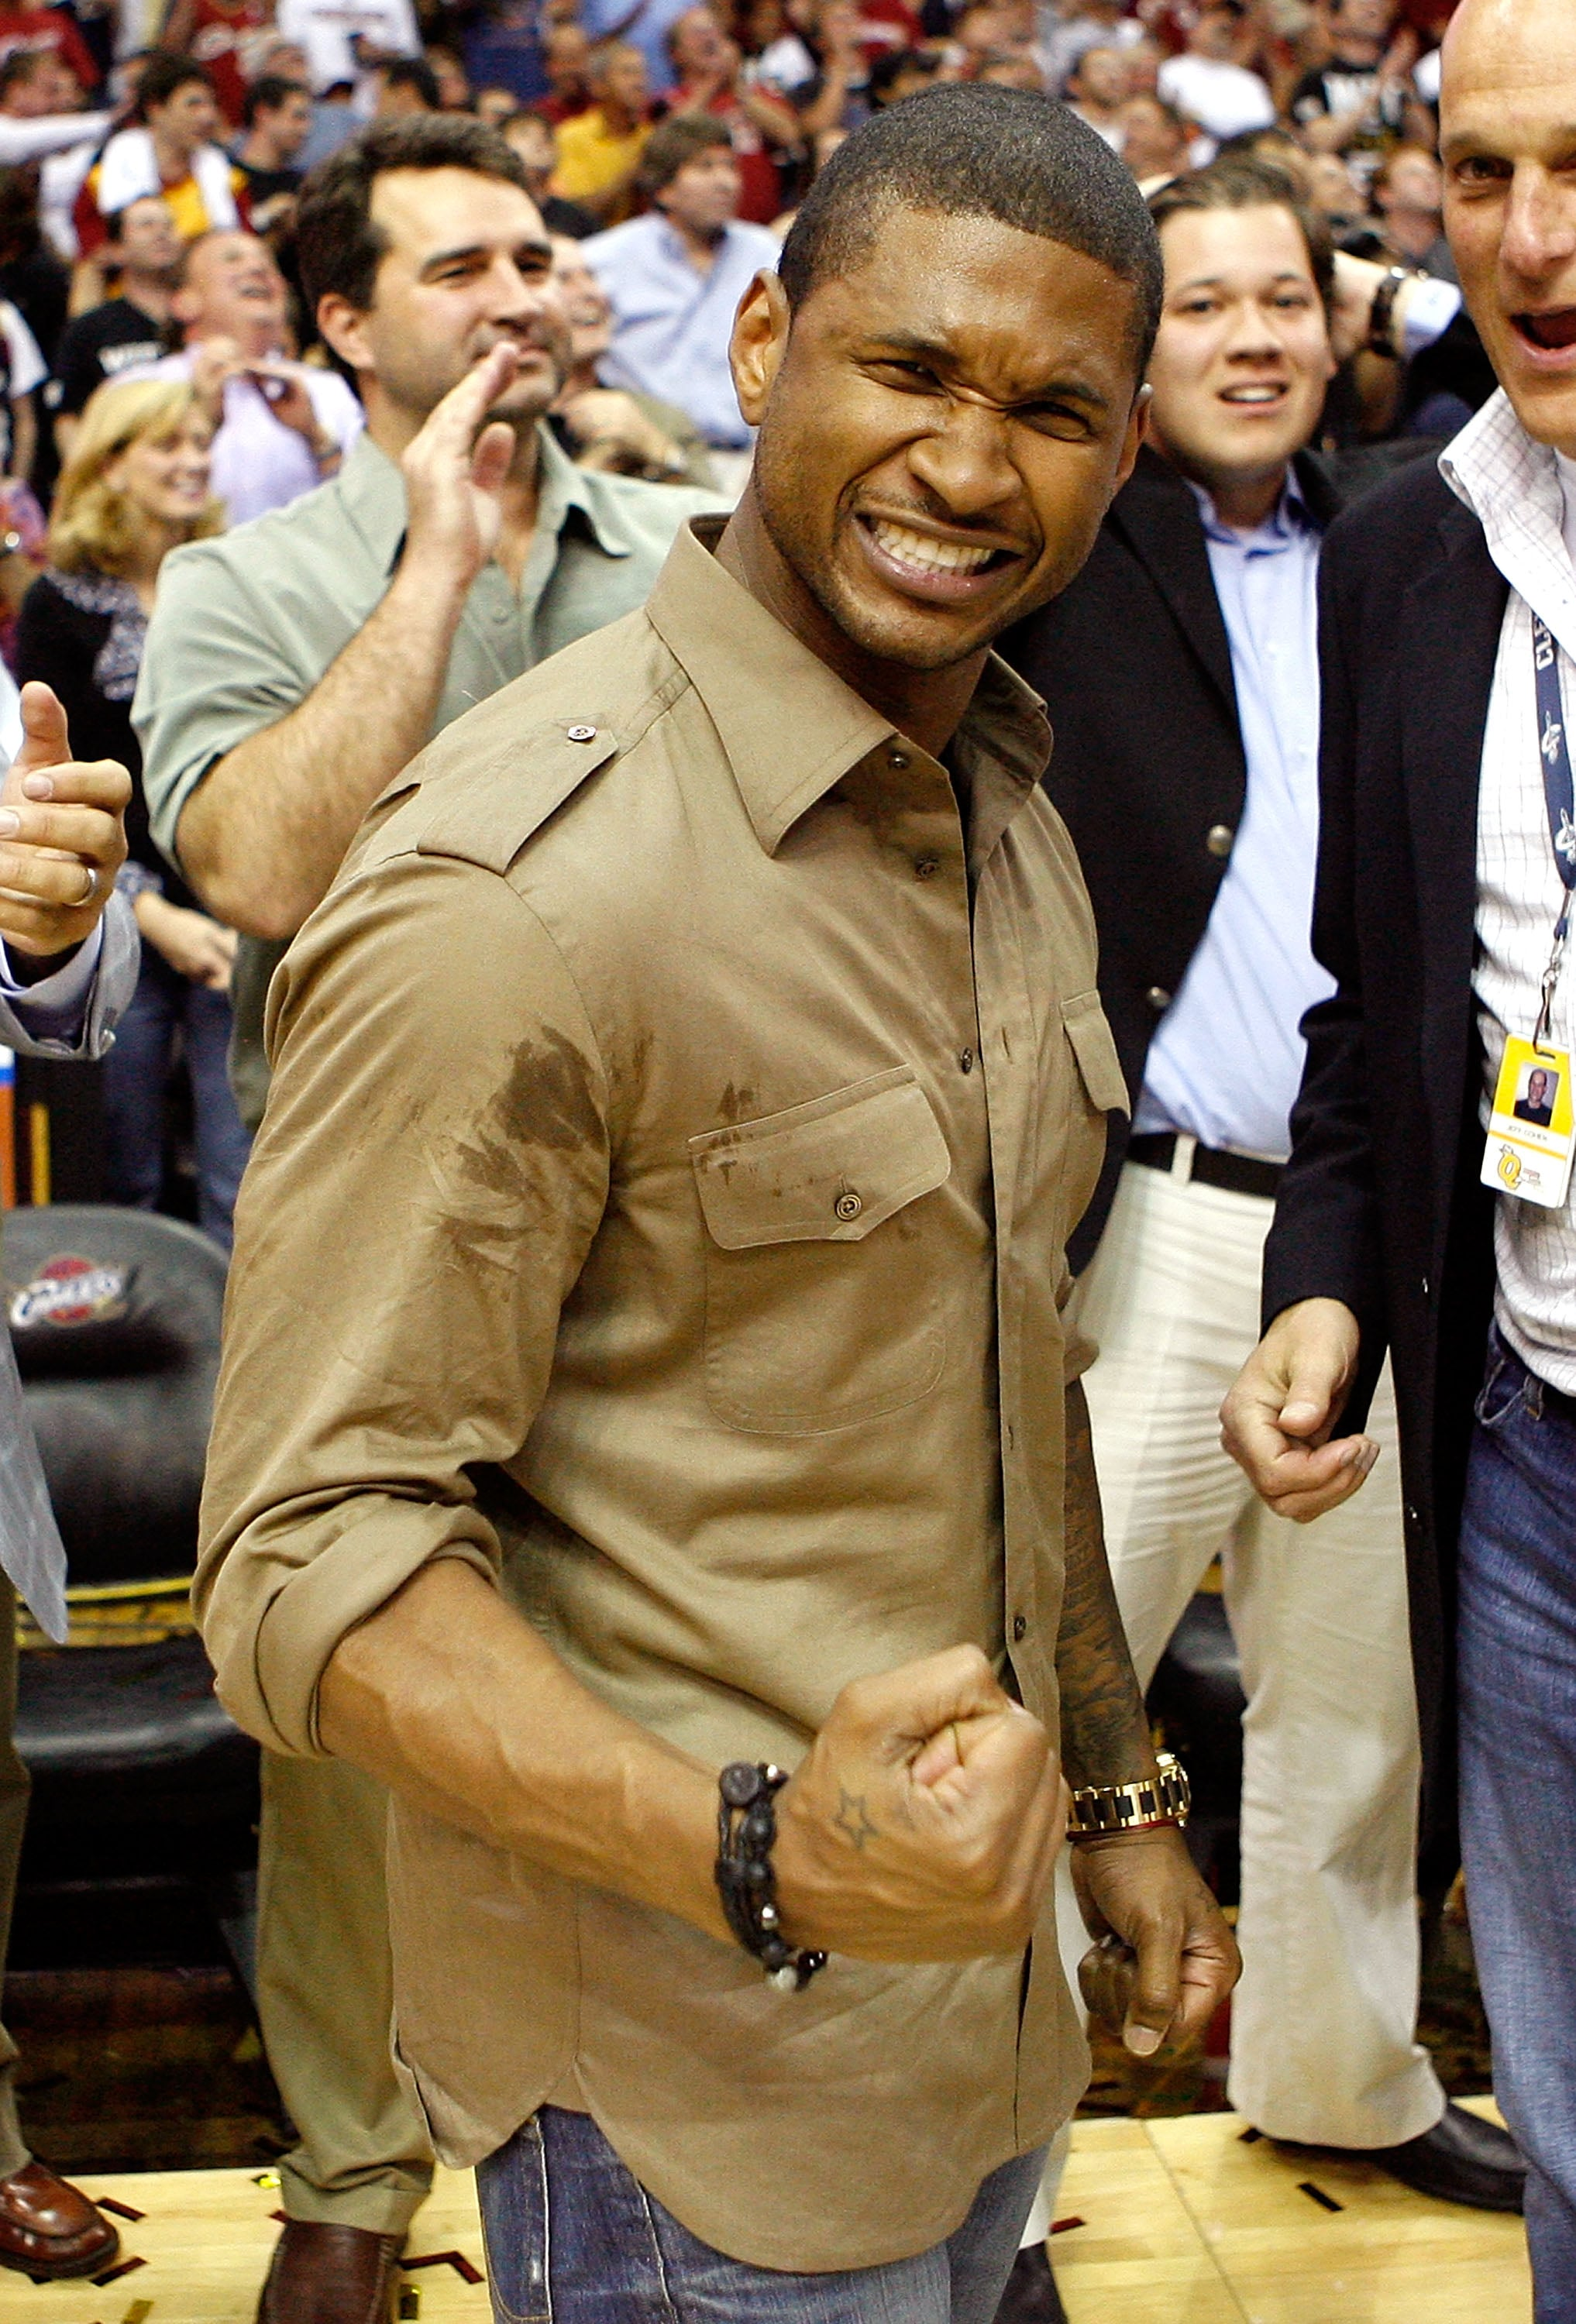 Usher celebrated as the Cleveland Cavaliers defeated the Orlando Magic during the NBA playoffs in May 2009.